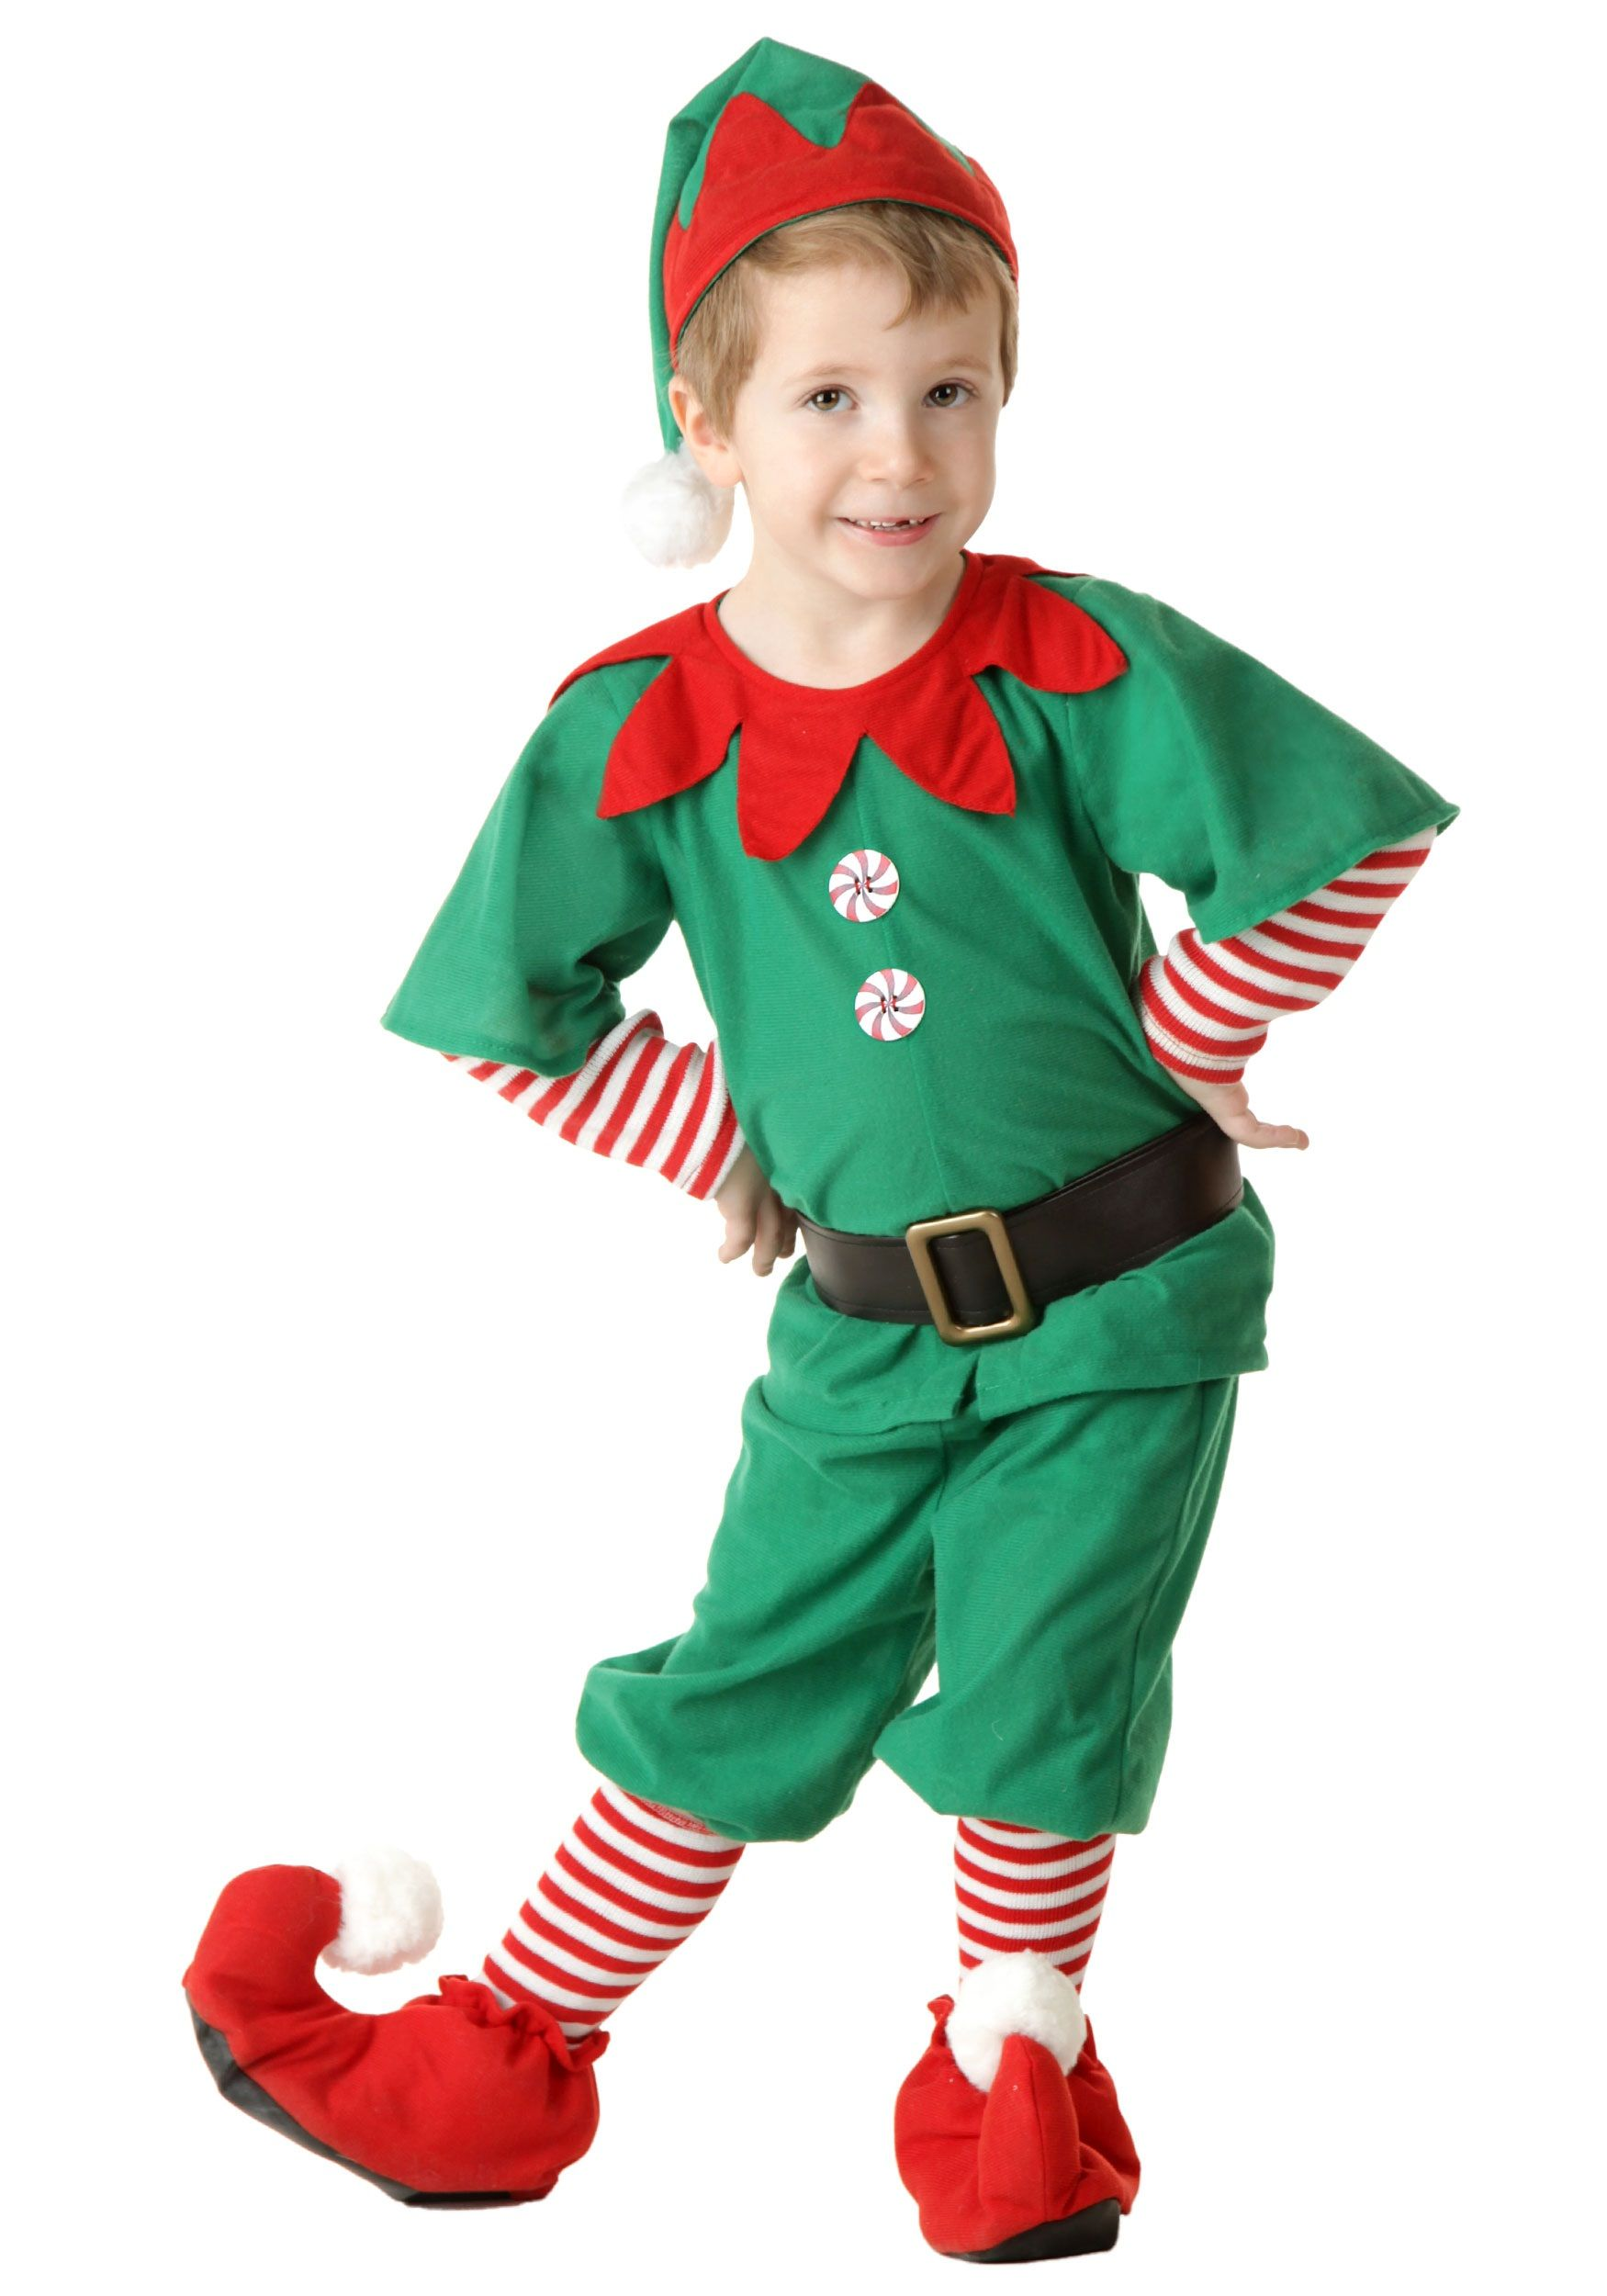 Toddler Happy Christmas Elf Costume | Costume Ideas and Tutorials ...